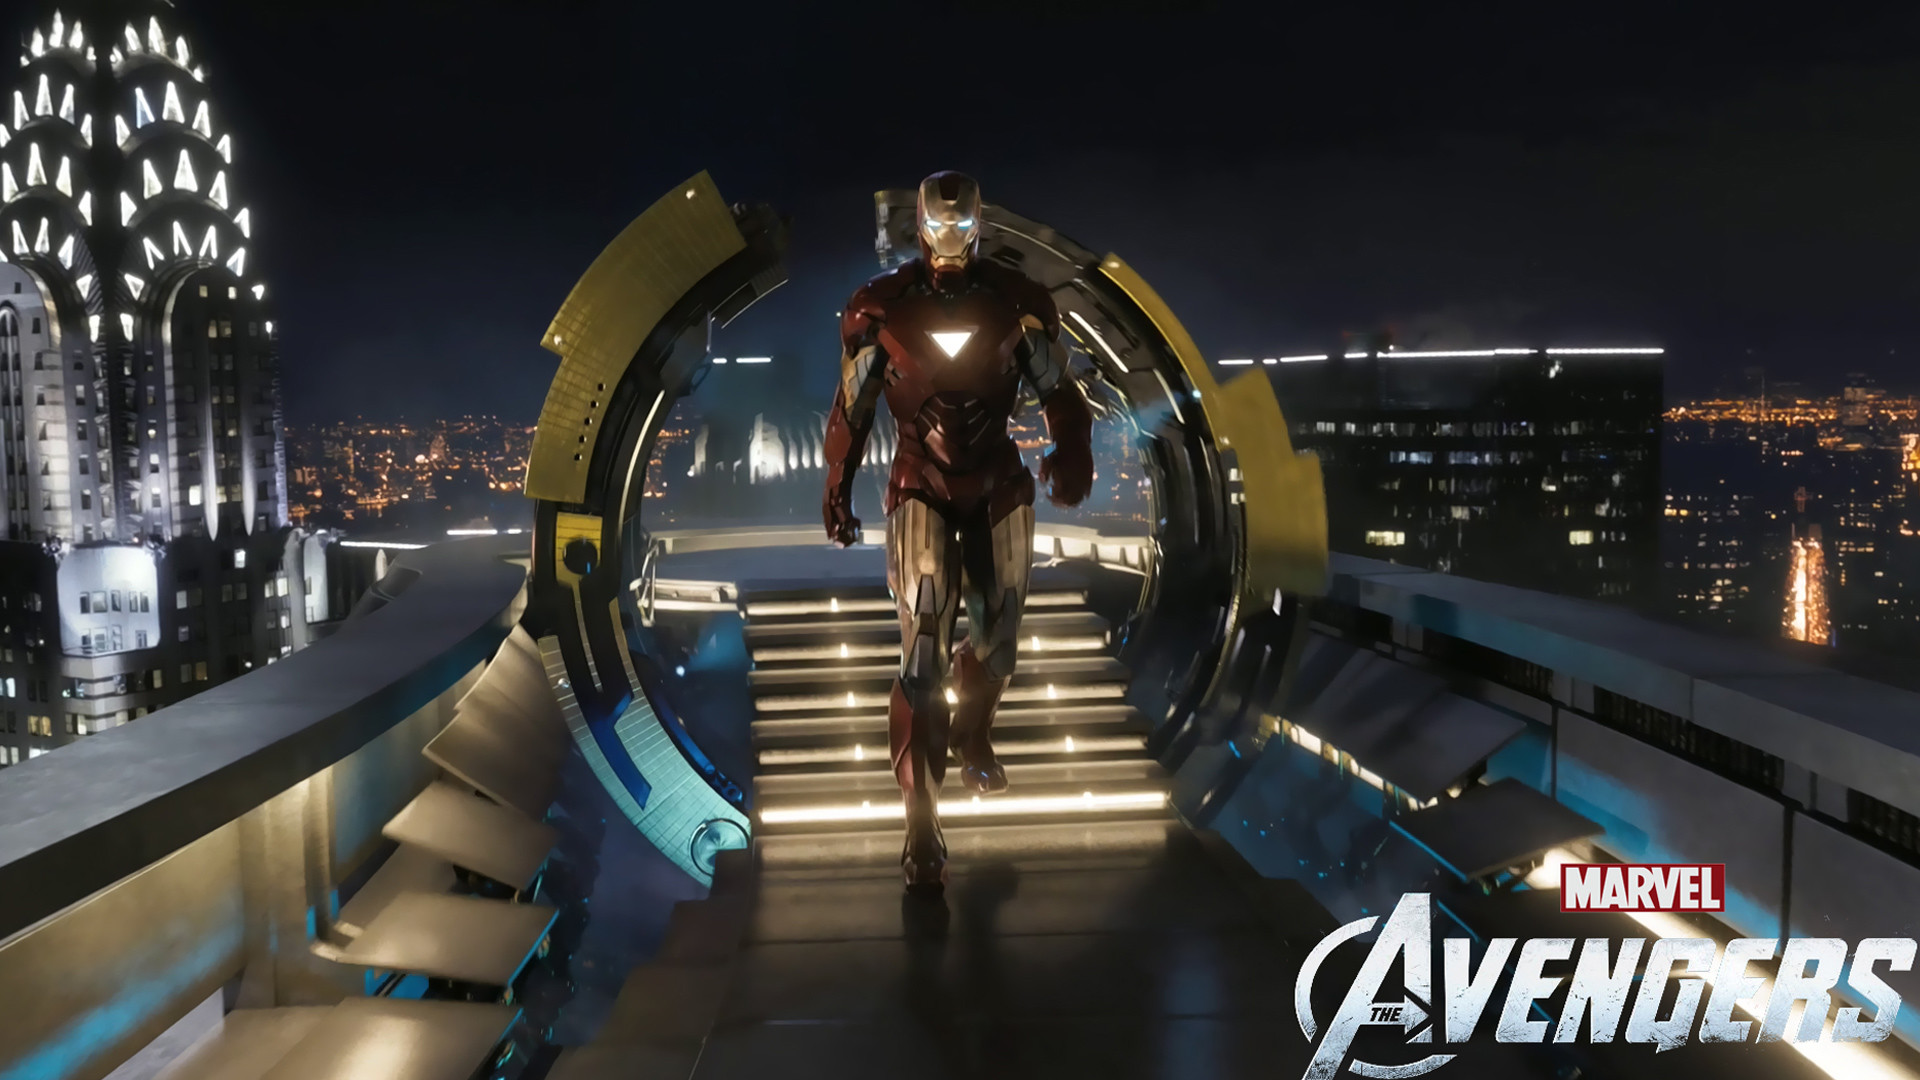 Print Avengers Iron Man 3 Coloring Pages or Download Avengers Iron .